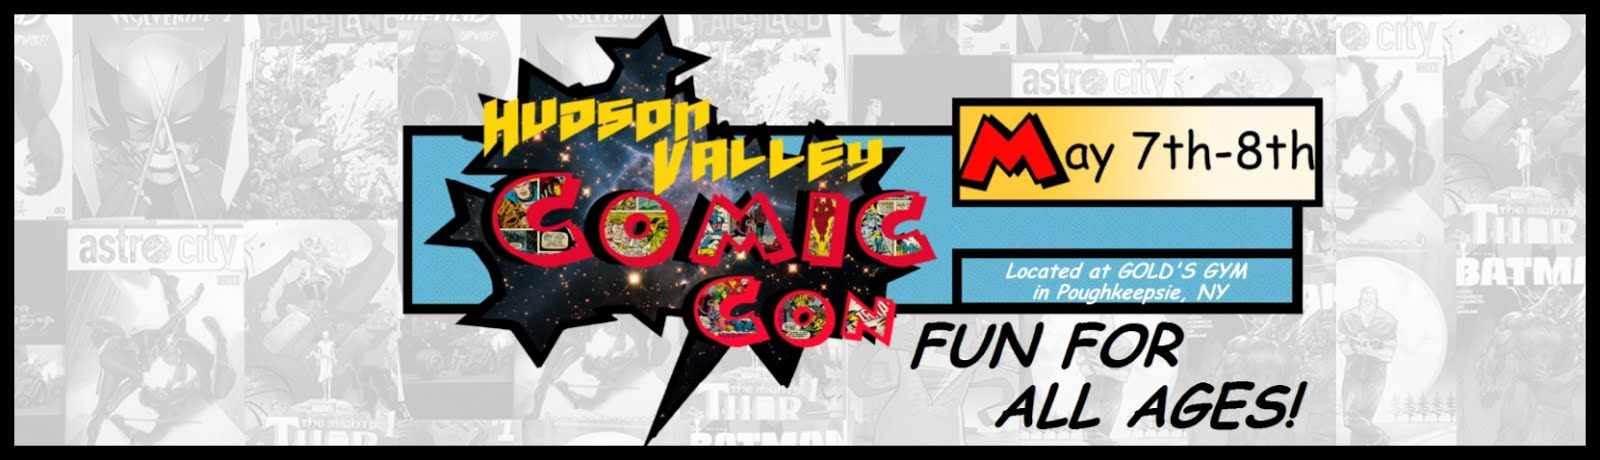 Hudson Valley Comic Con